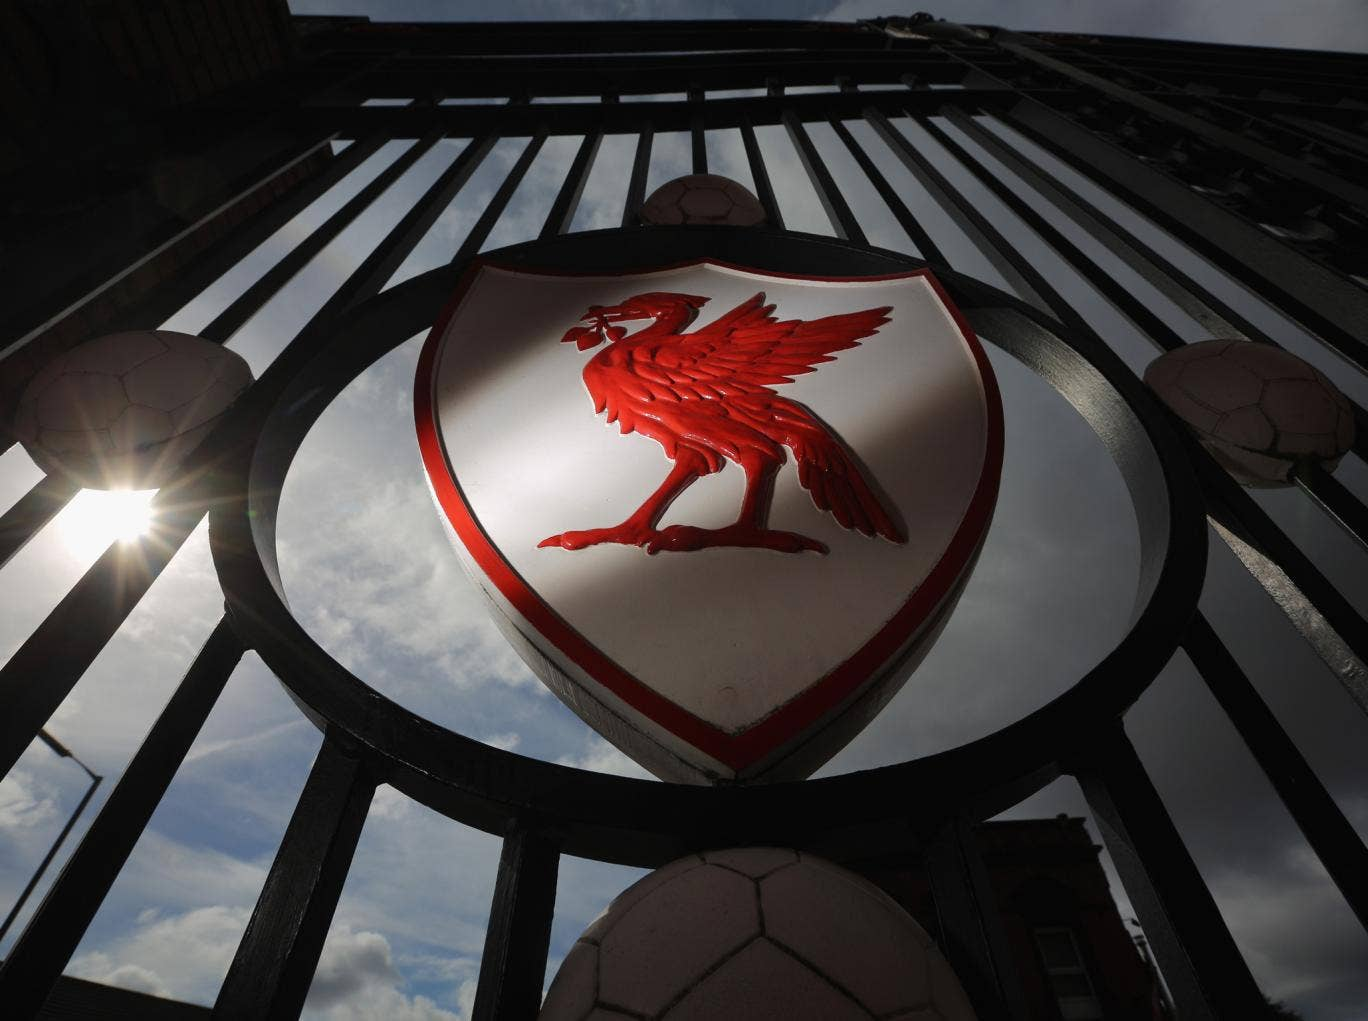 Liverpool FC emblem on Anfield stadium's gates. Victims' families want inquiries to be 'knitted together'